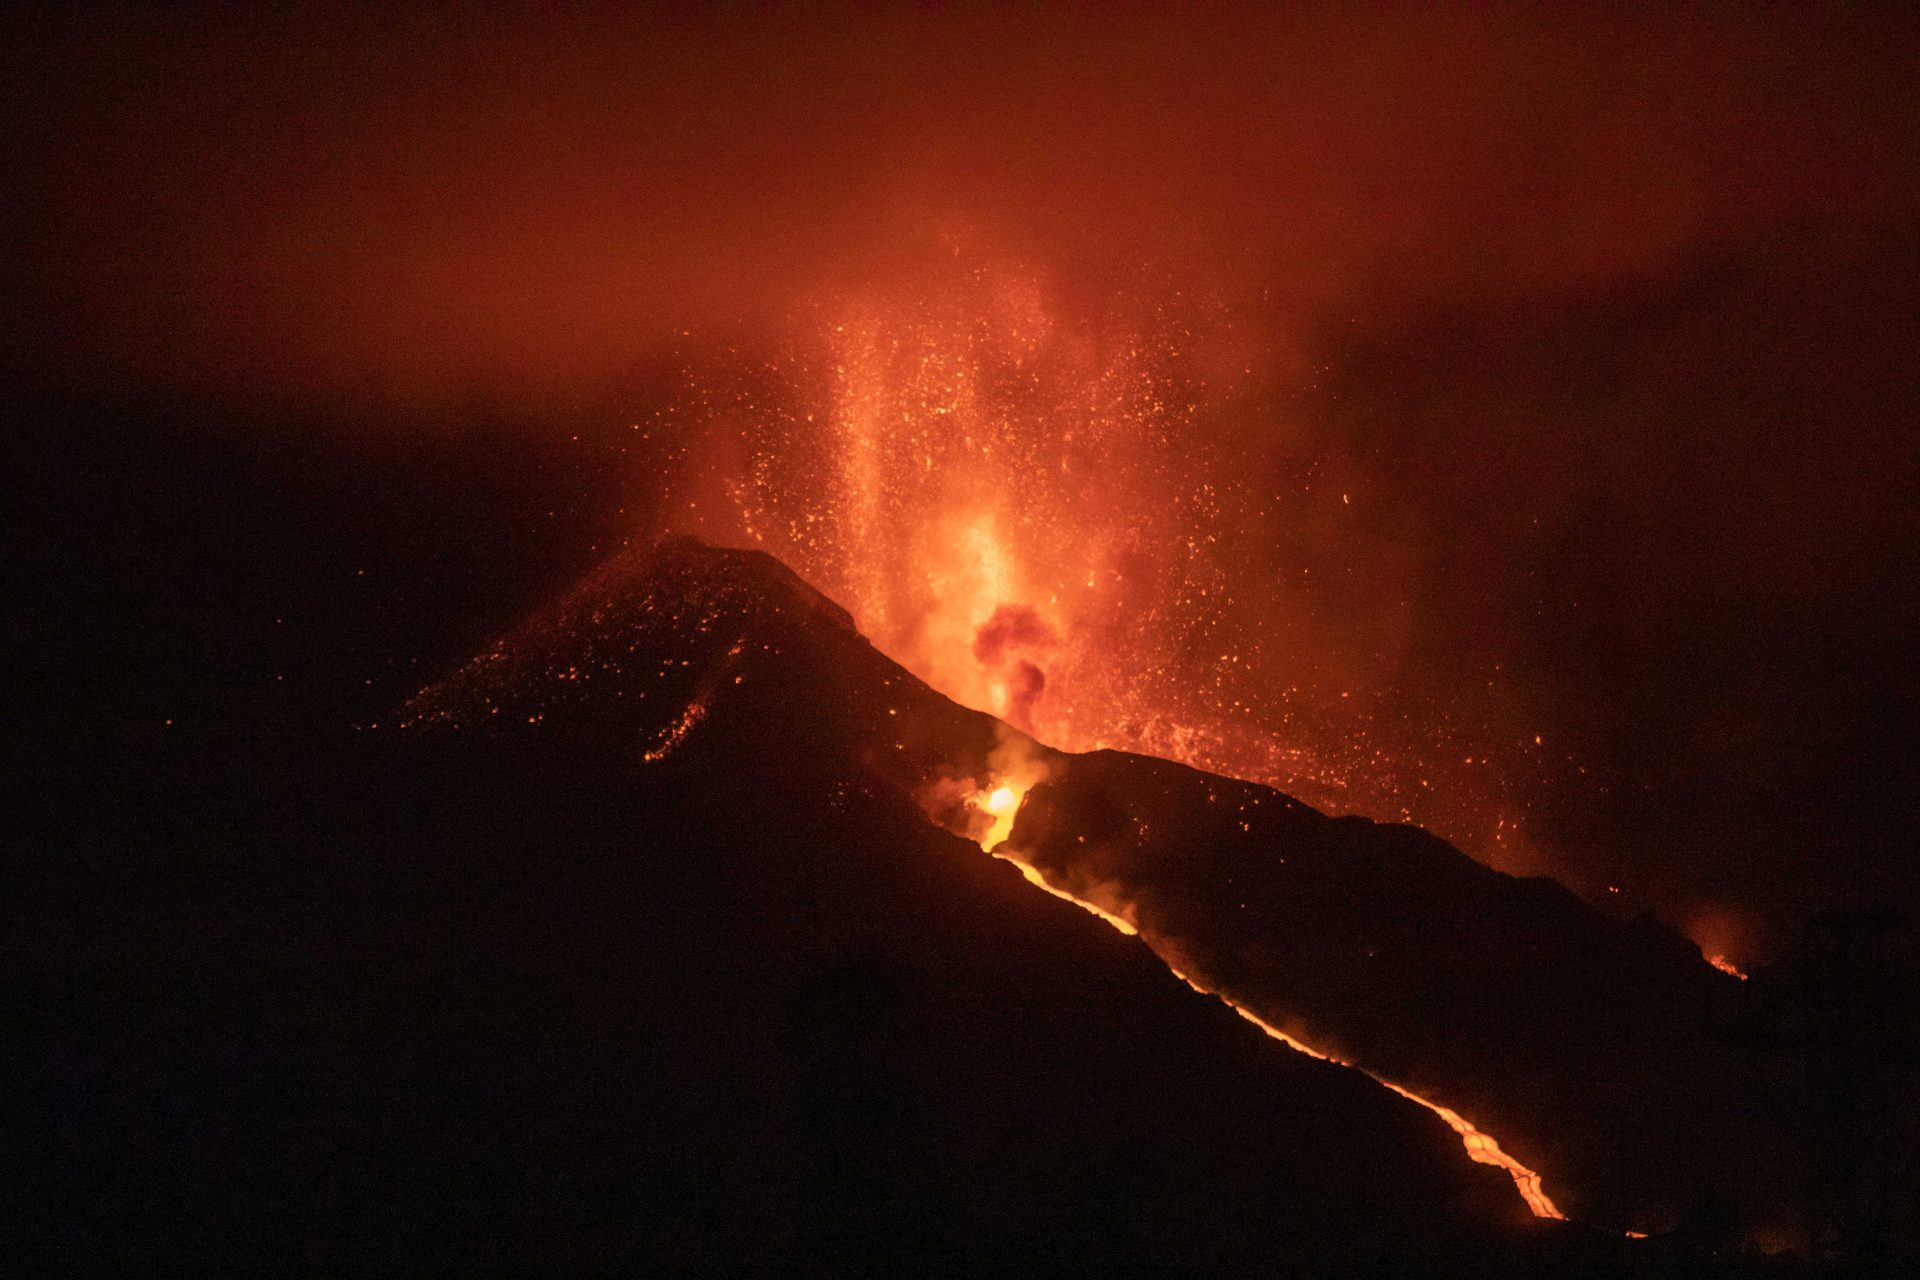 The world is trembling: are we seeing more volcanic and seismic activity than usual?